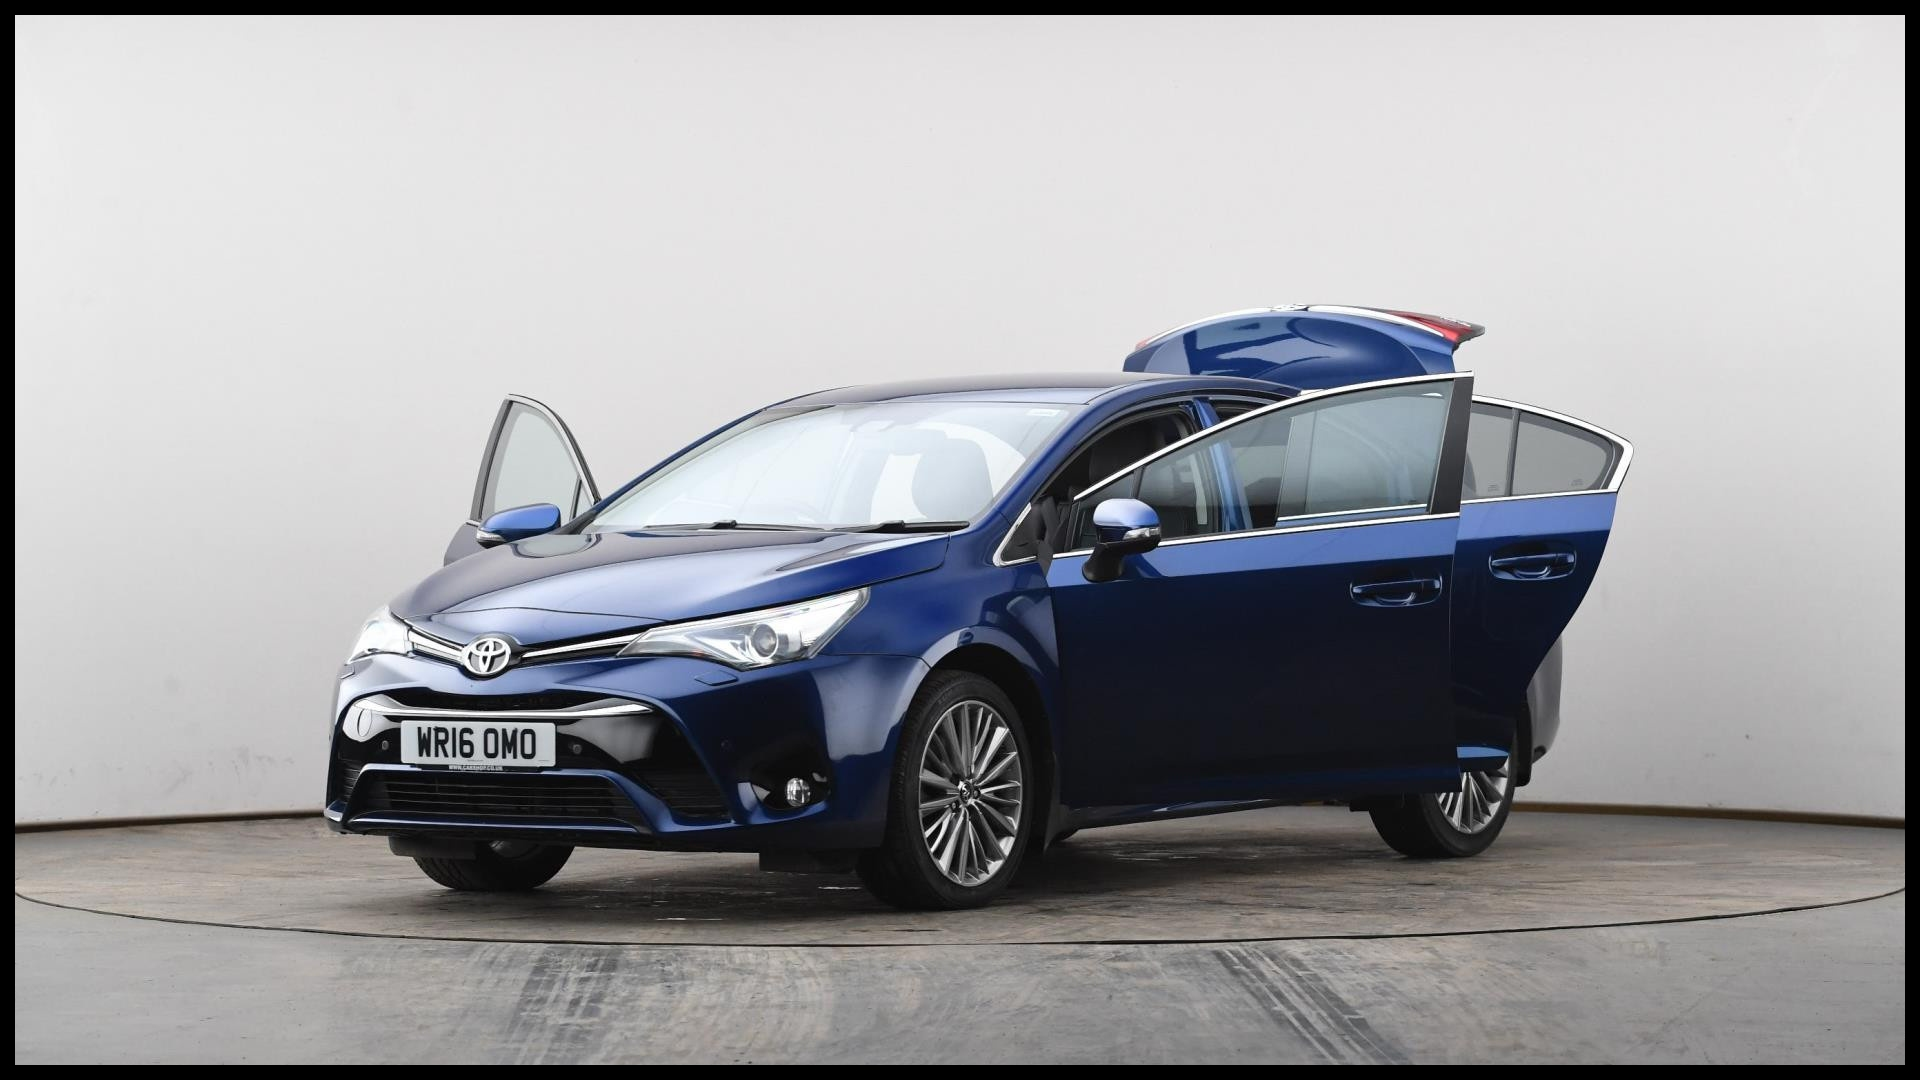 Toyota Yaris First Car Insurance Best Lovely Insurance toyota Yaris